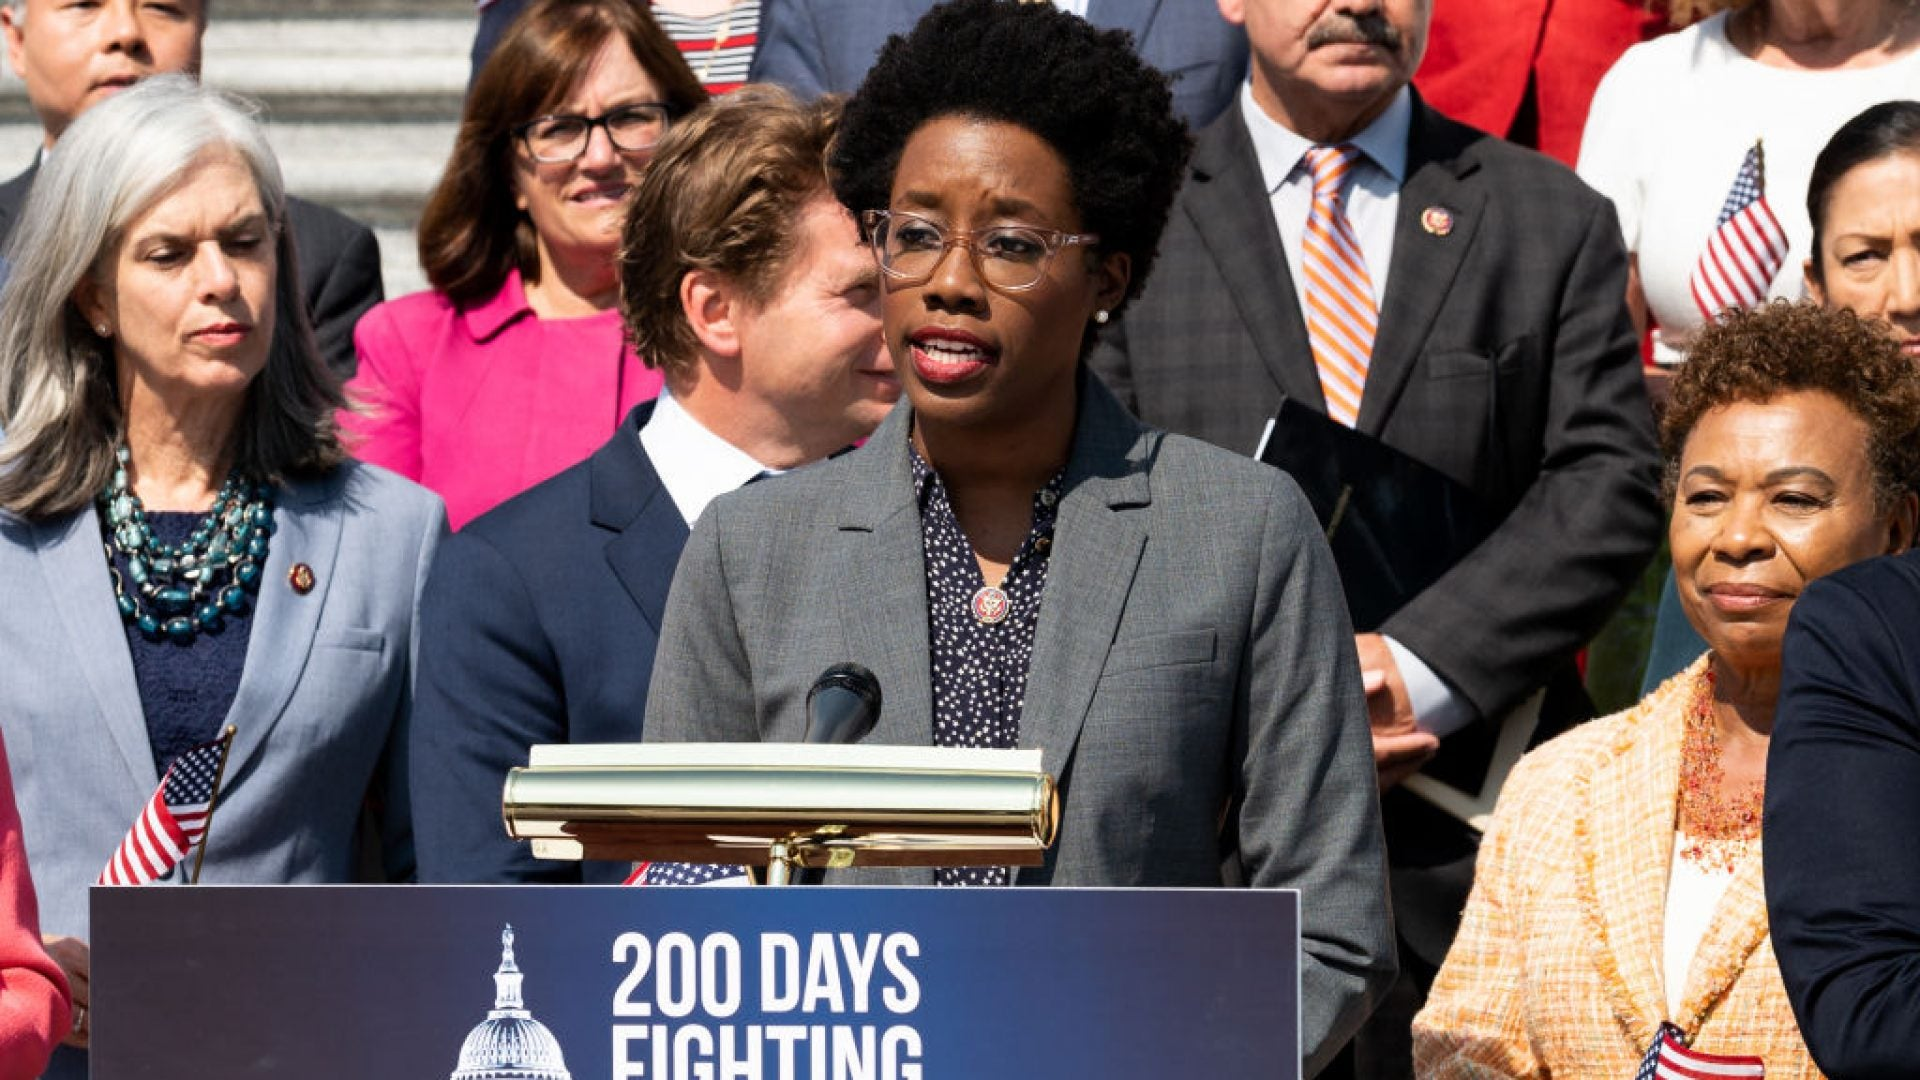 Lauren Underwood Defeats Republican Challenger In Illinois' 14th Congressional District Race